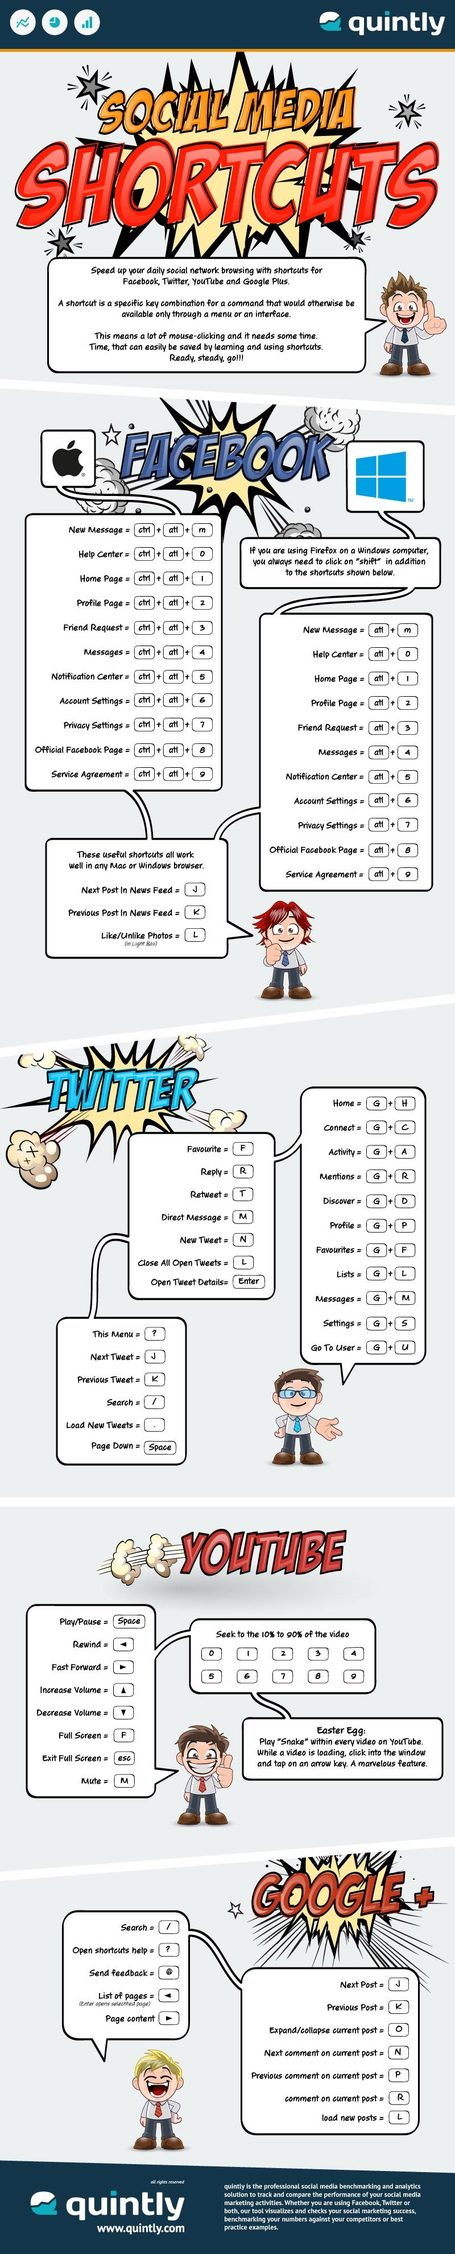 Social Media: Infographic Shortcuts for Facebook, Twitter, YouTube and Google+ | The Social Web | Scoop.it